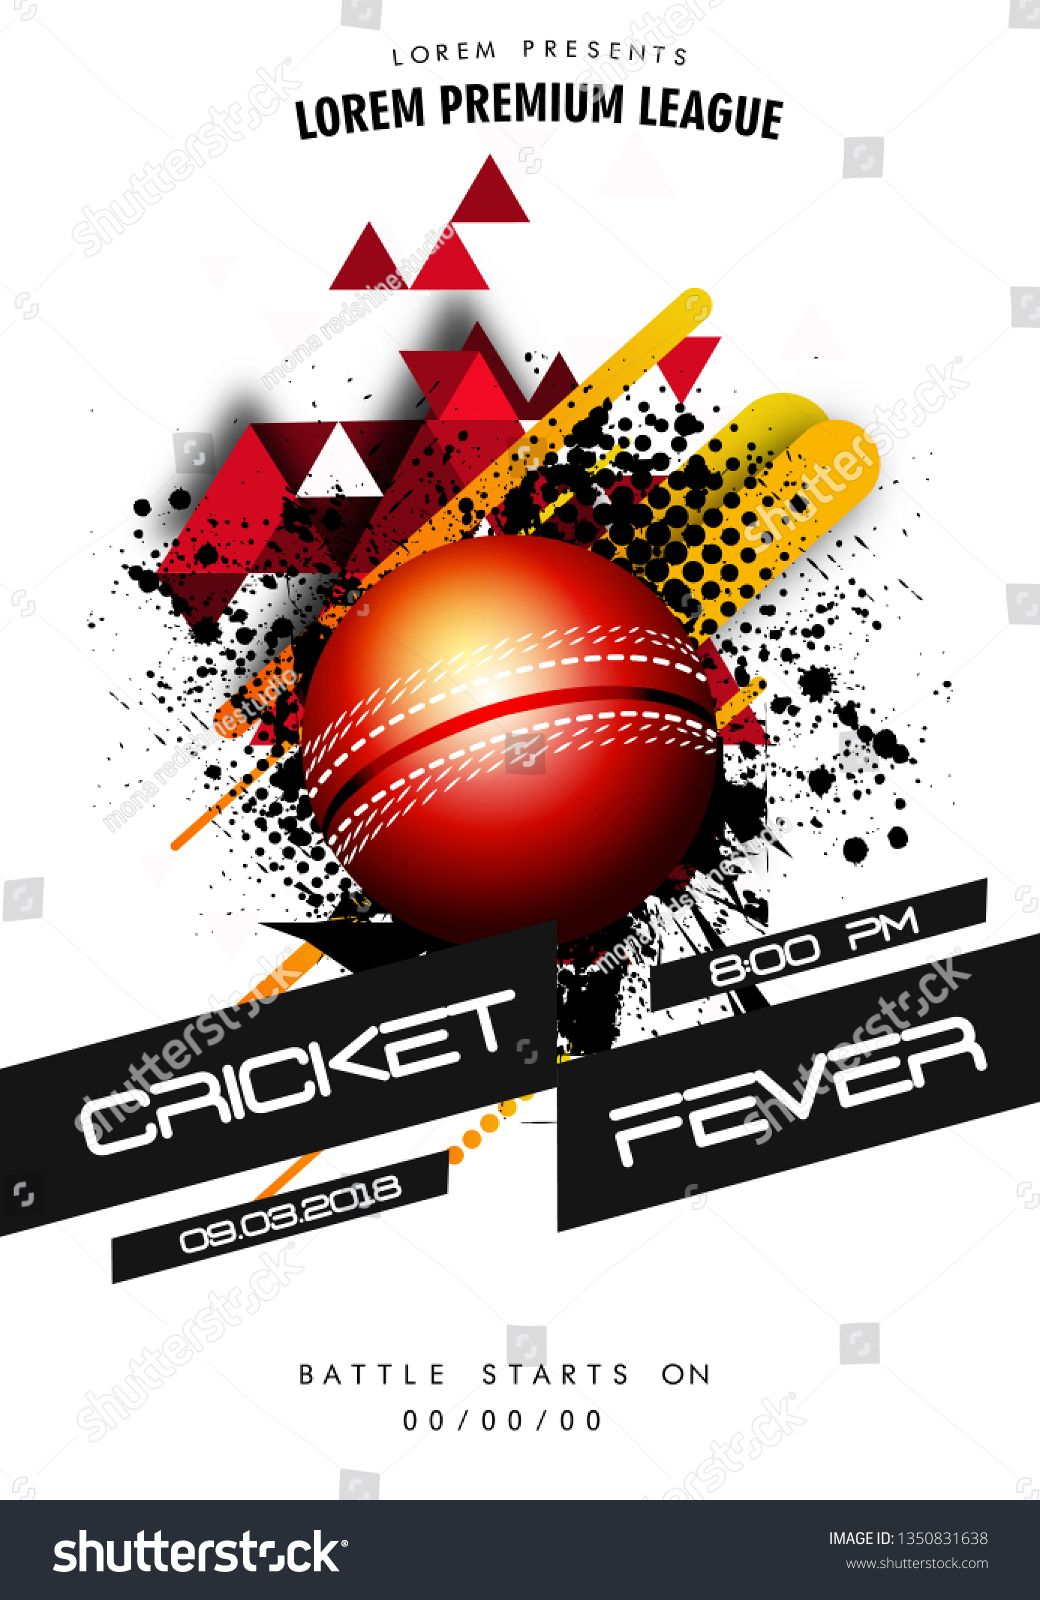 Cricket Championship header or banner design with illustration of realistic fiery ball illustration of bcricket championship sports